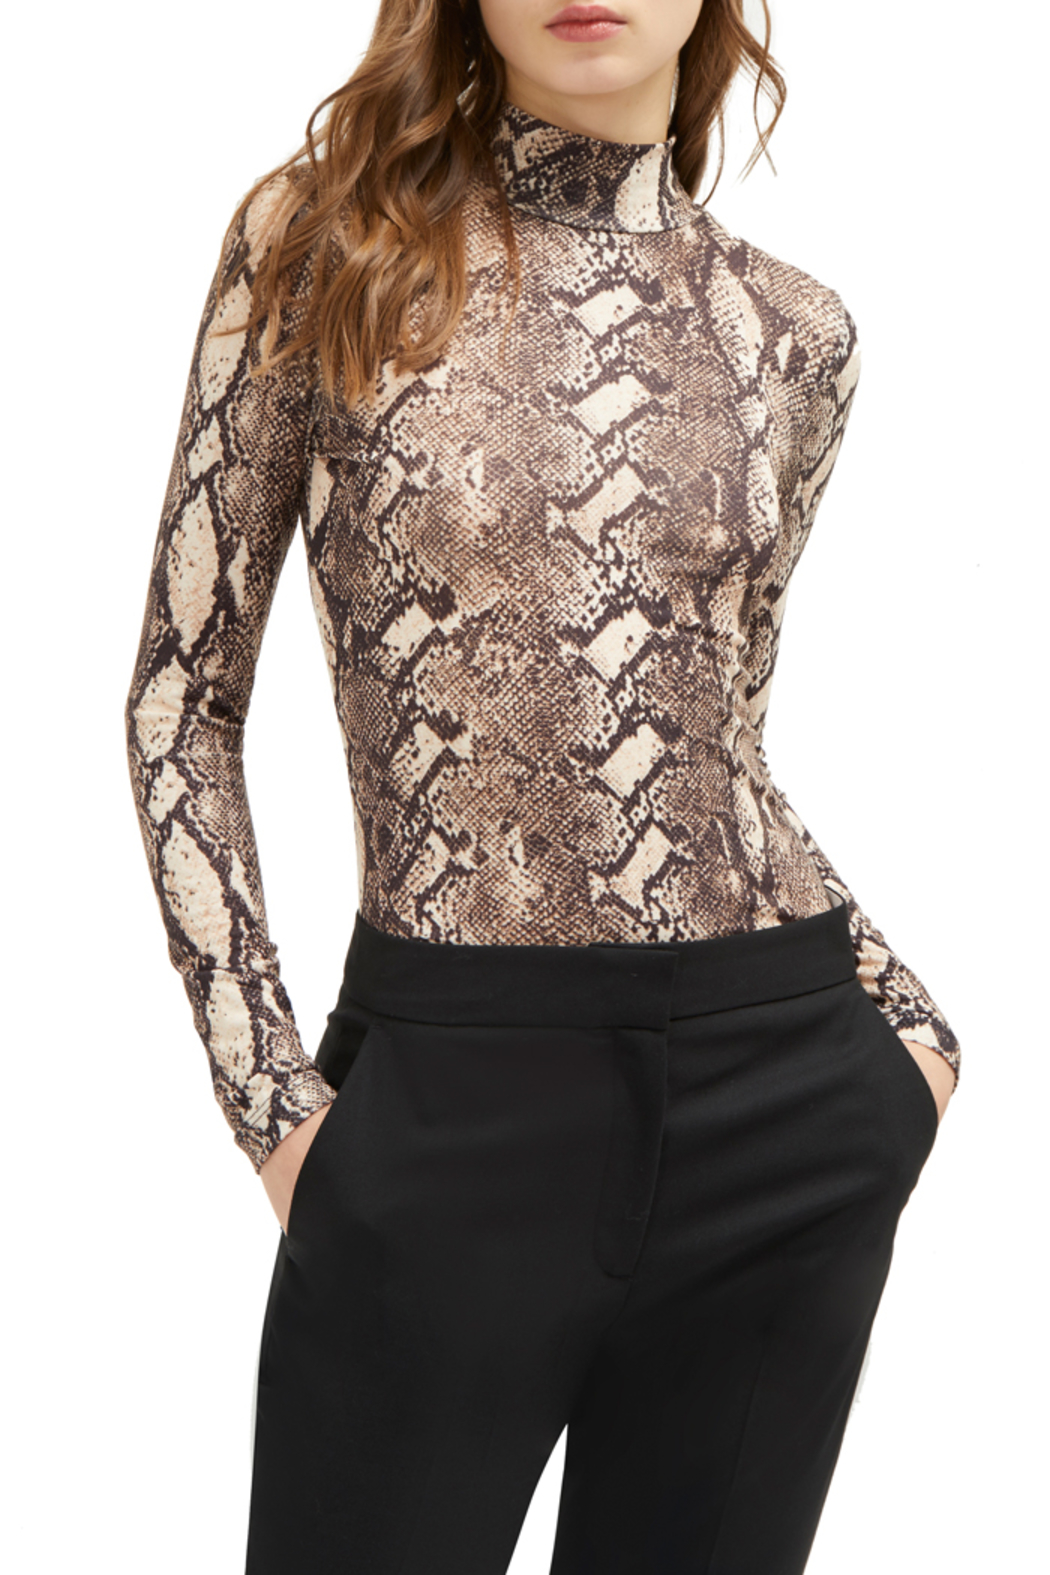 French Connection SNAKE PRINT HIGH NECK TOP - Main Image